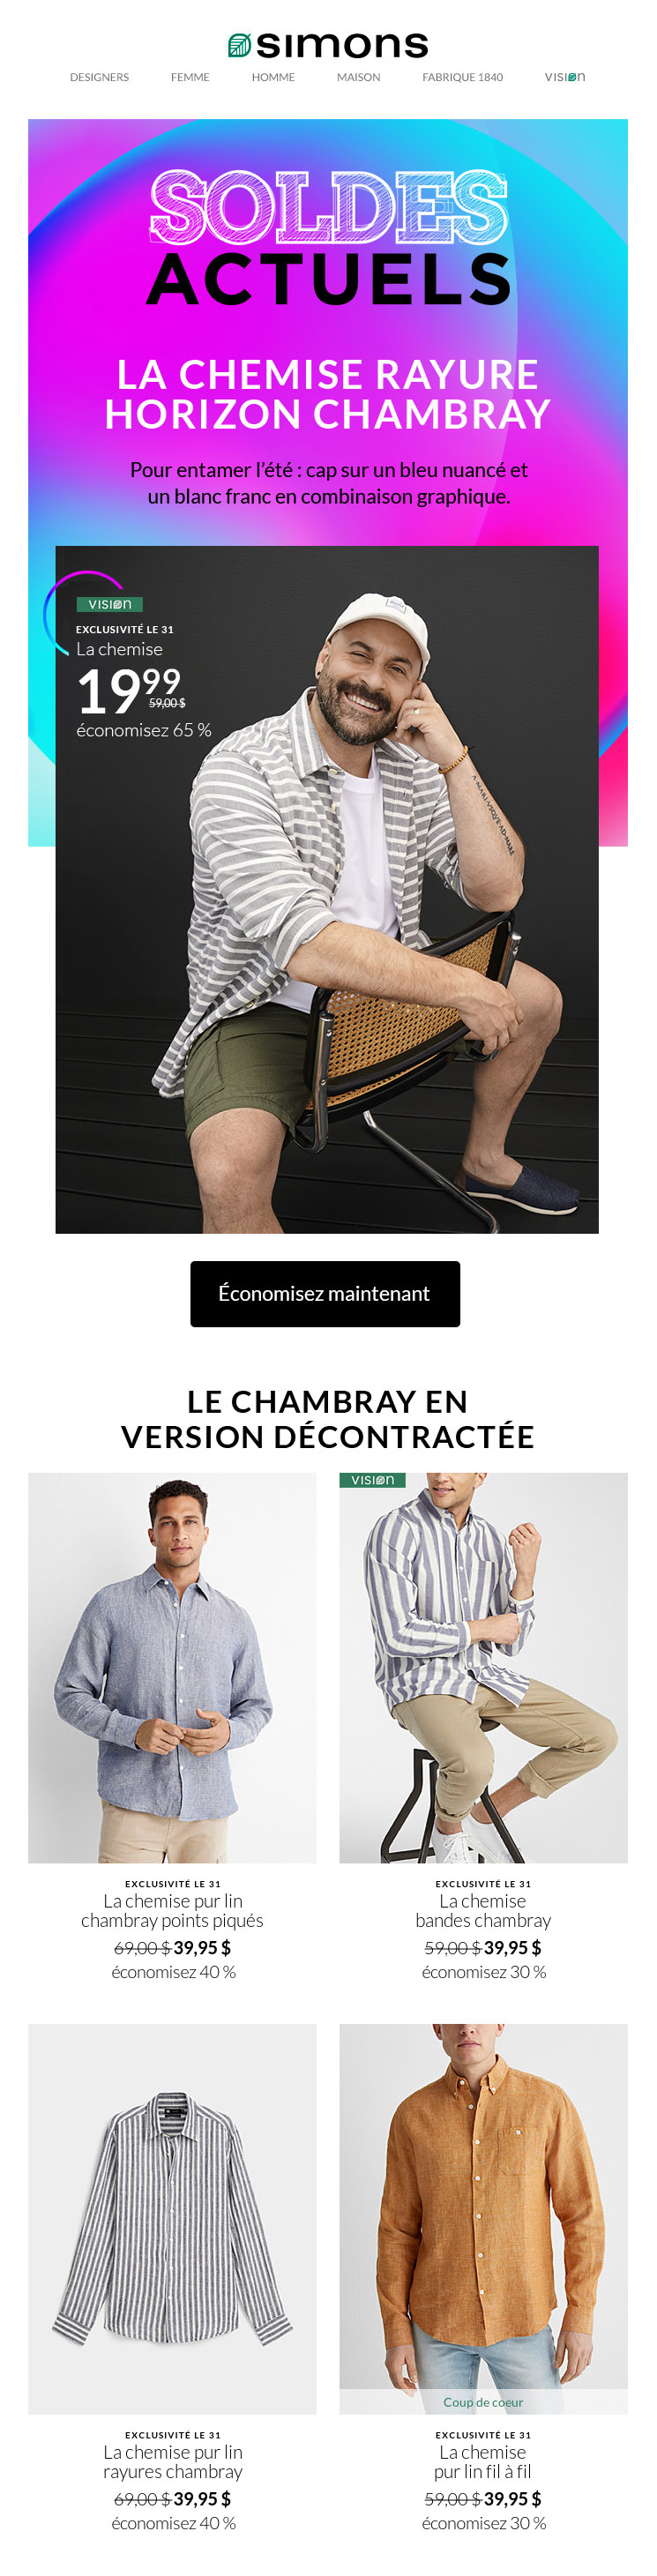 La Chemise Chambray à Adopter!